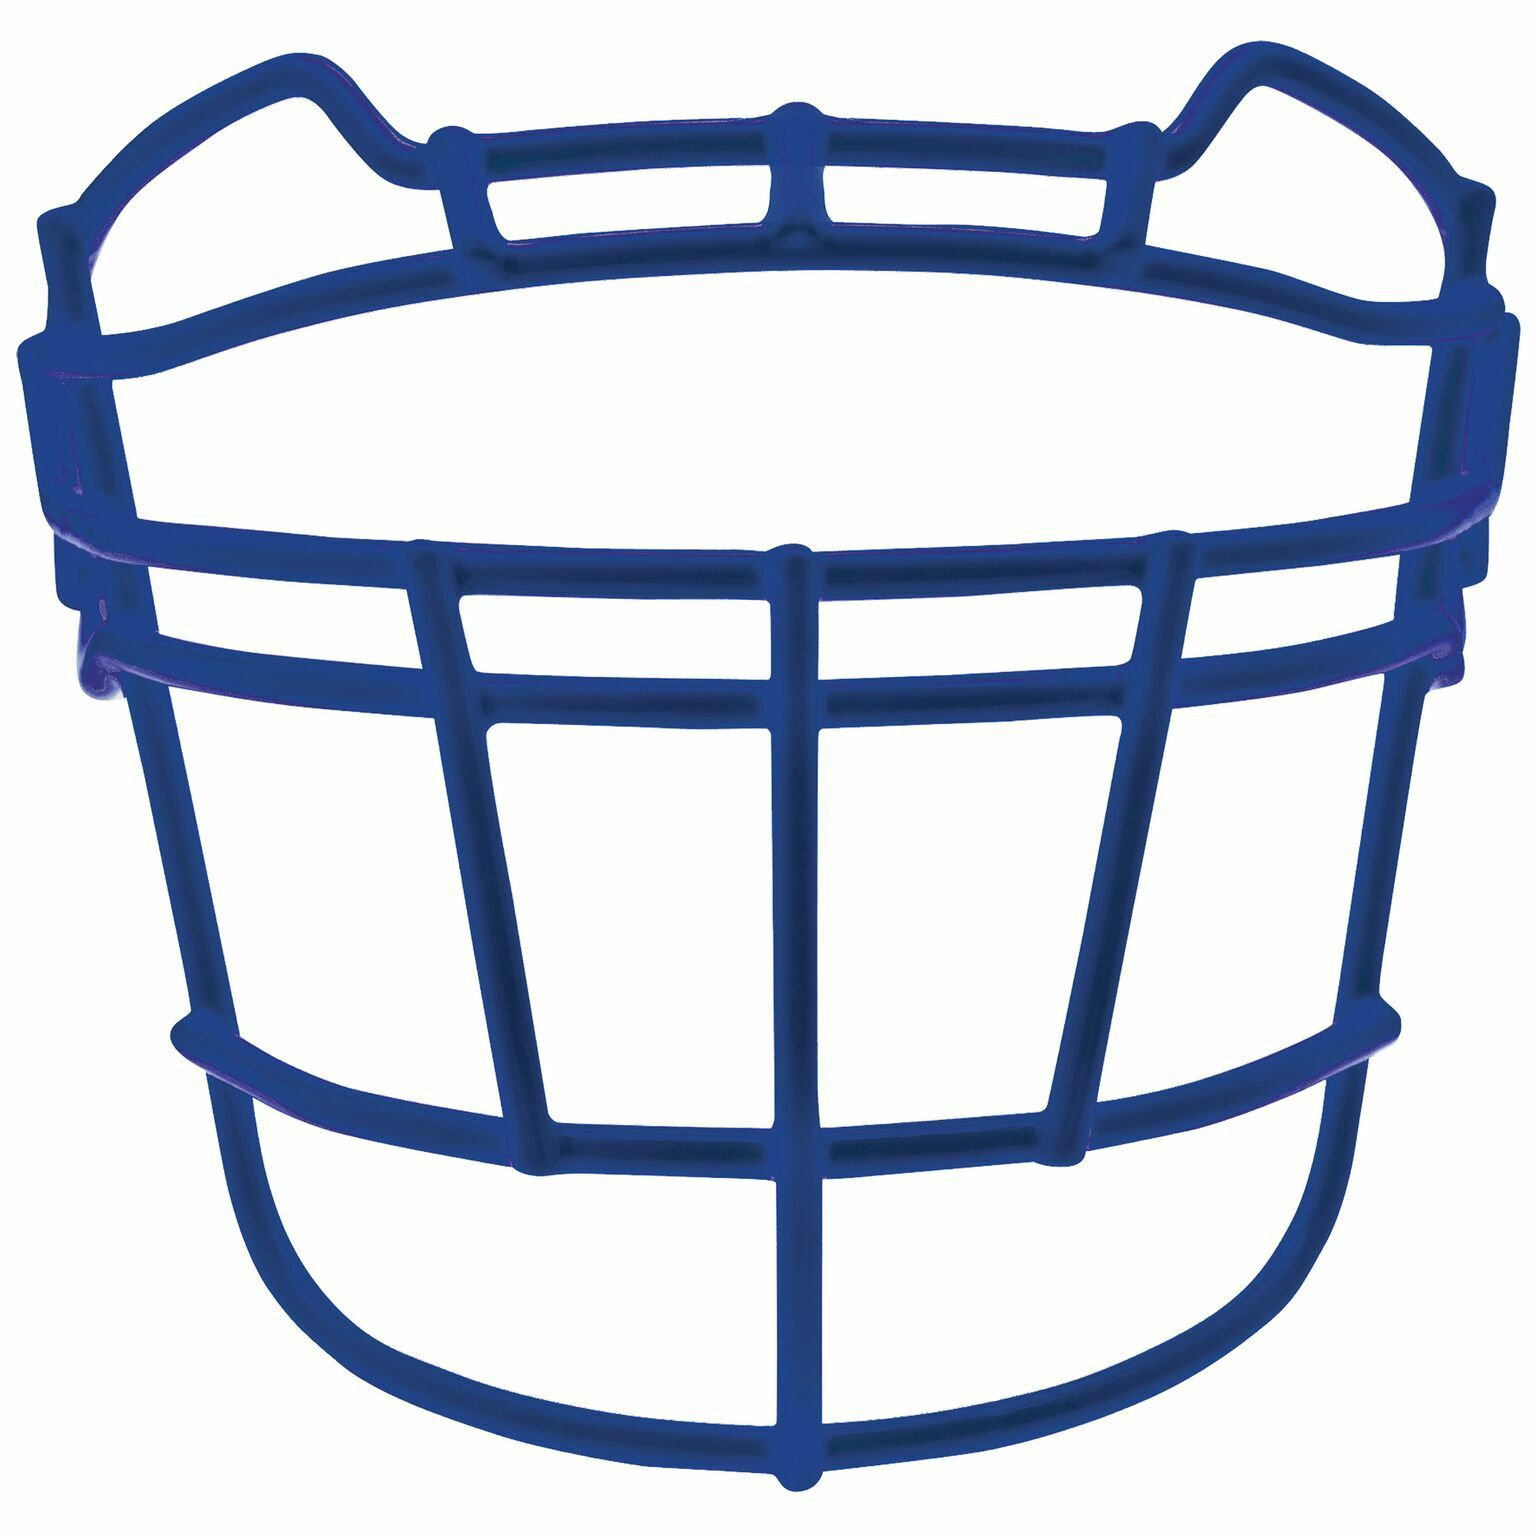 Schutt Vengeance V-RJOP-DW-TRAD Adult Football Helmet Facemask SEATTLE blueE